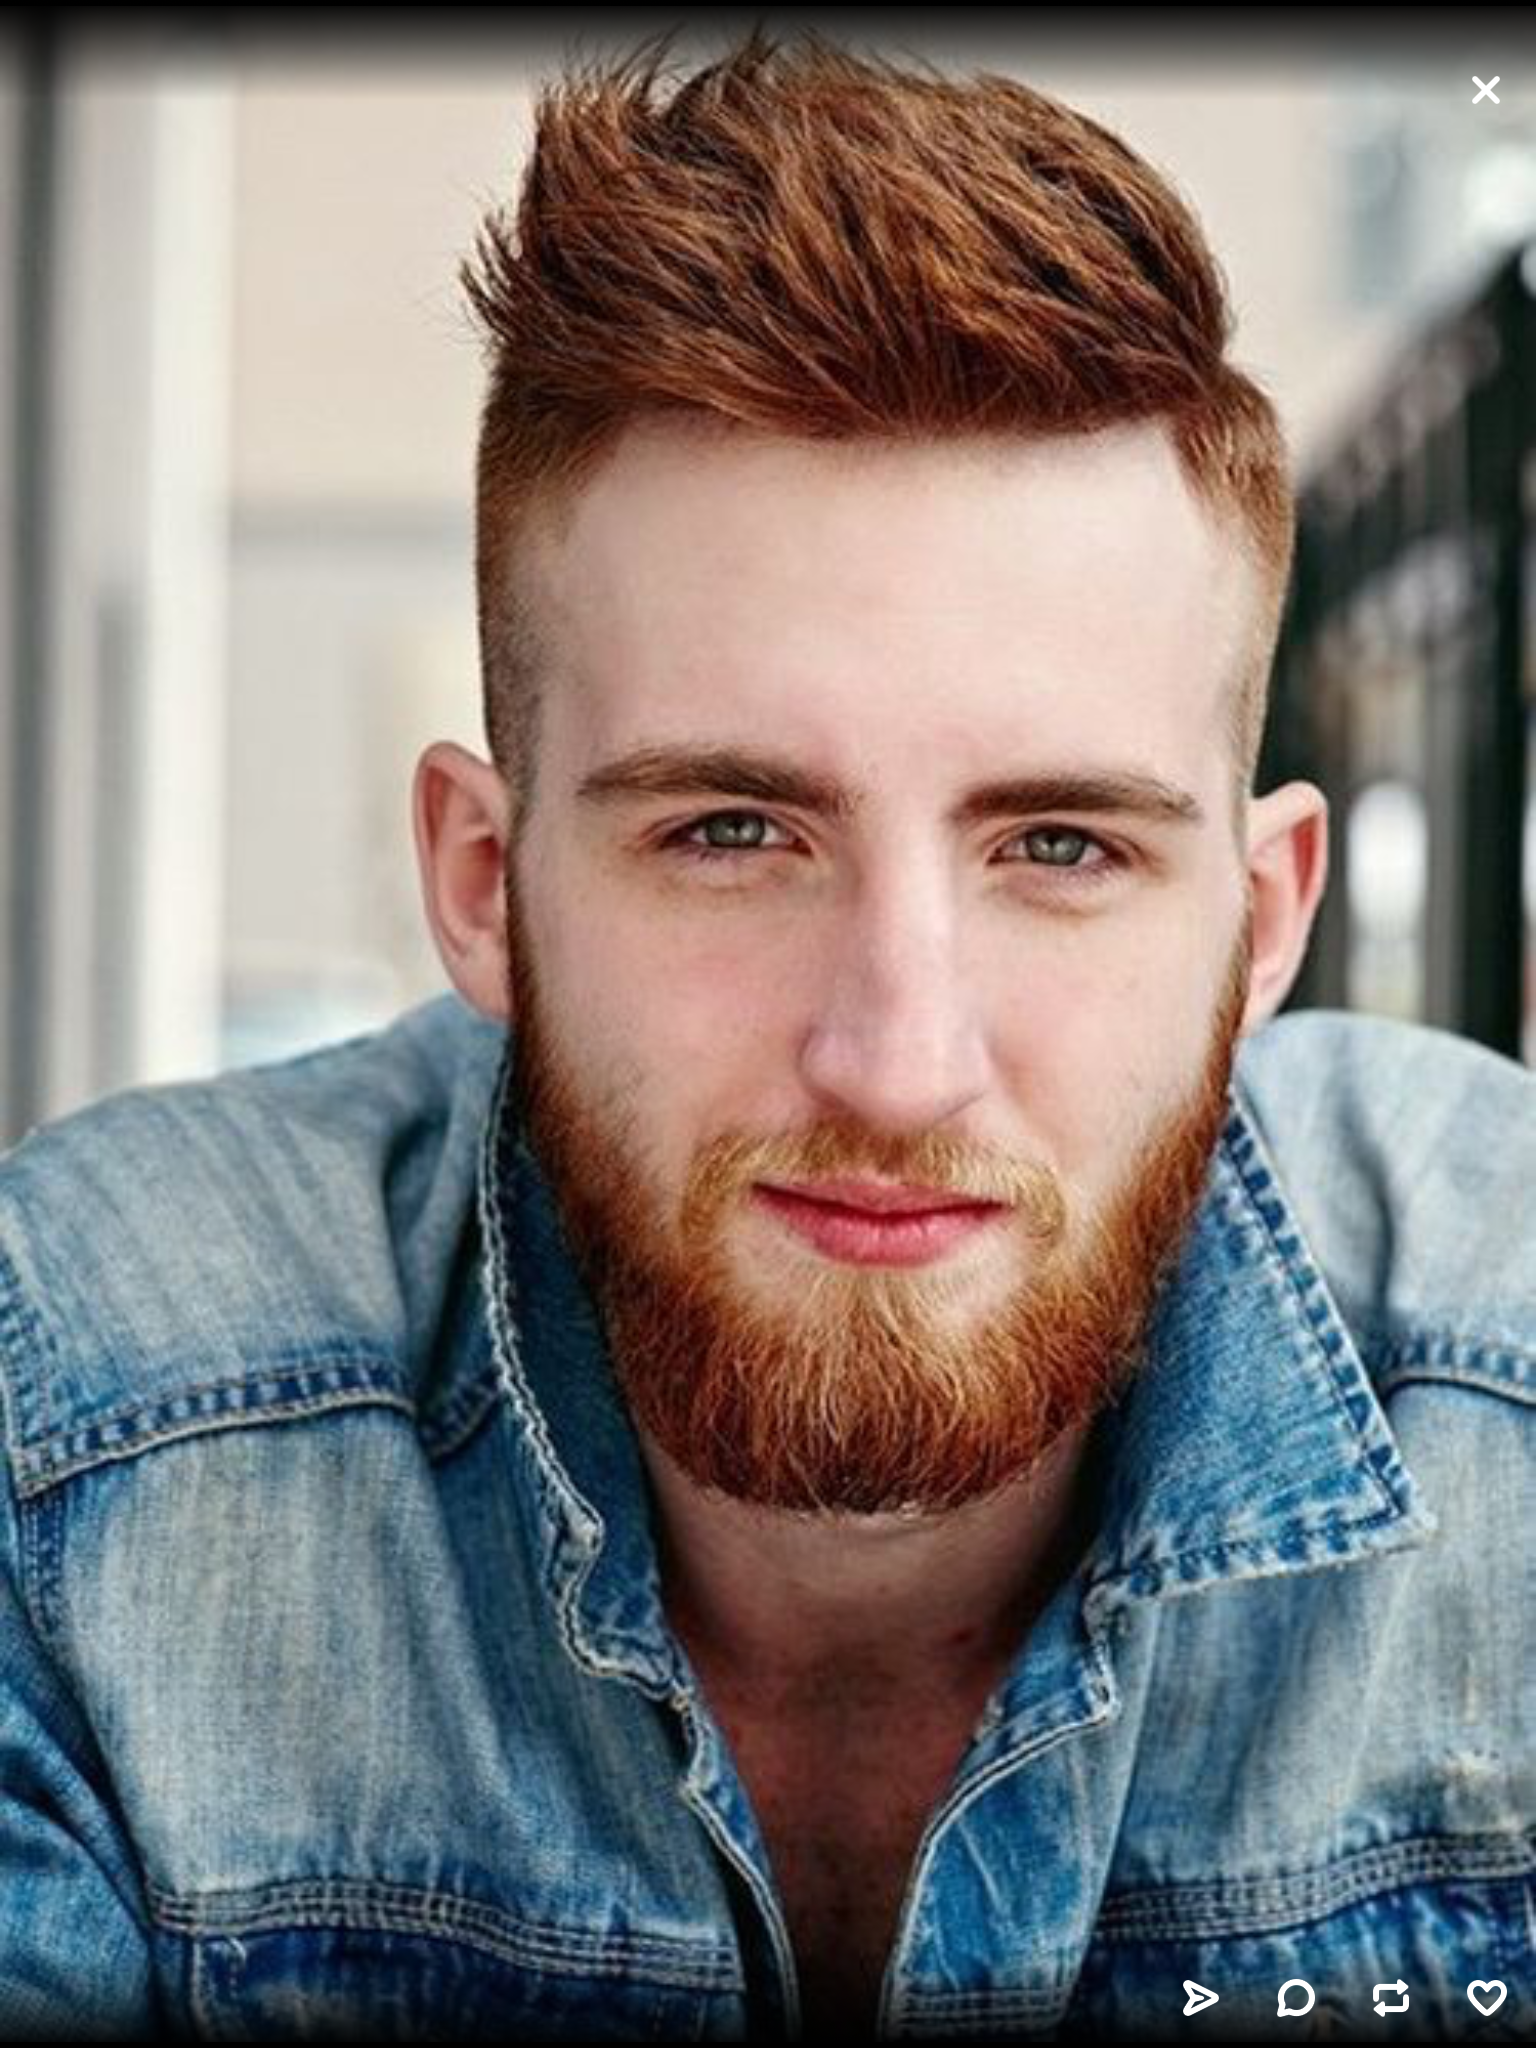 Ginger Thriller Love A Beard Side Hairstyles Shaved